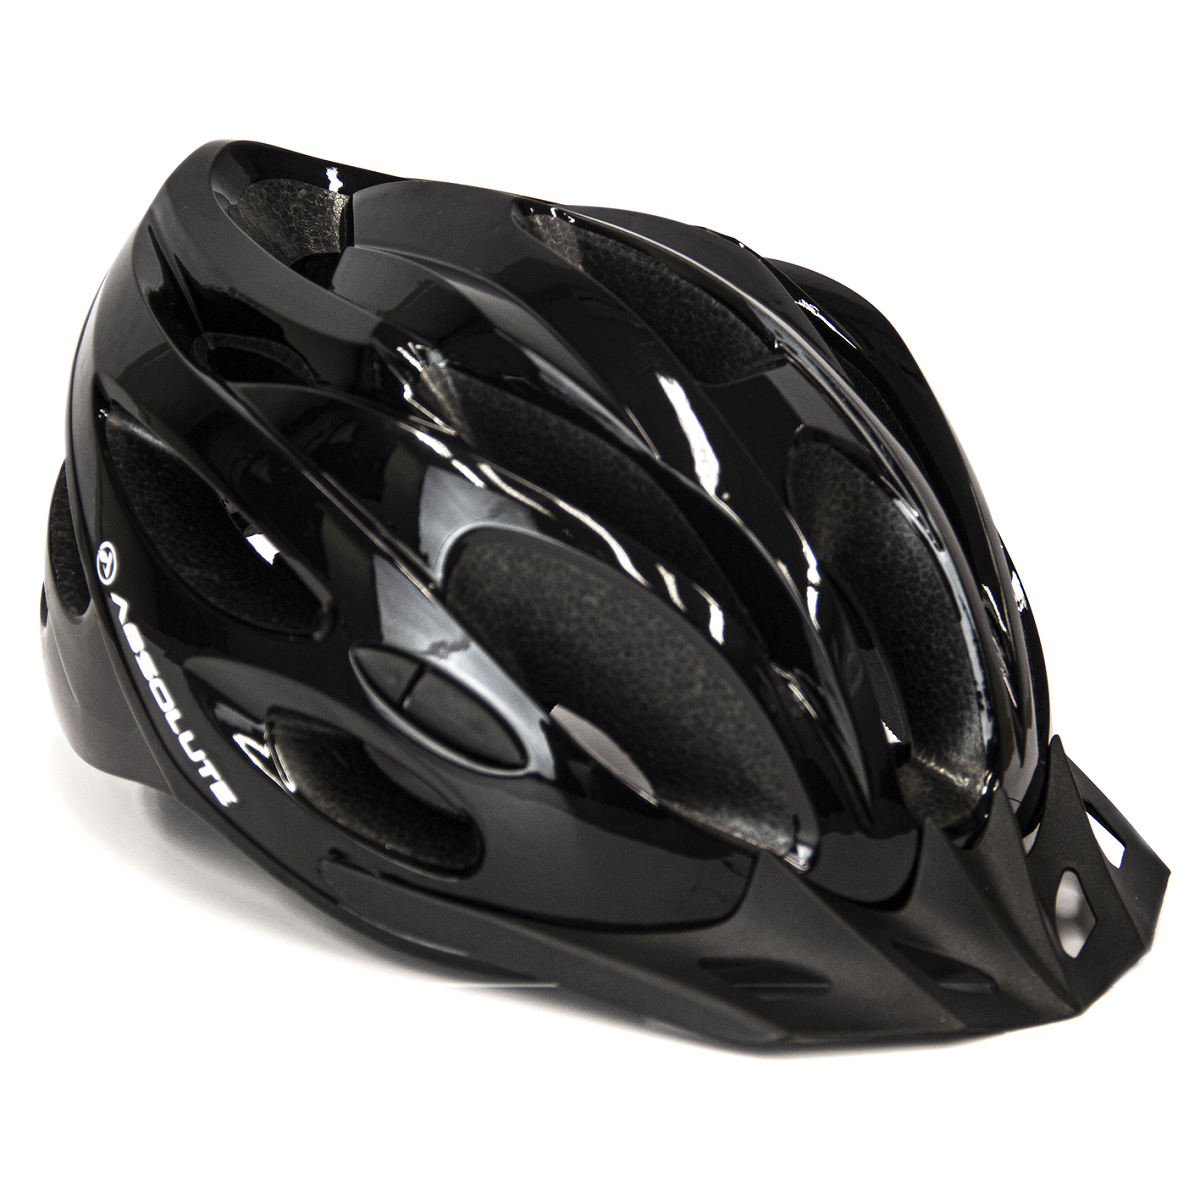 Capacete Ciclismo Bike Absolute Nero c/ Led - Preto